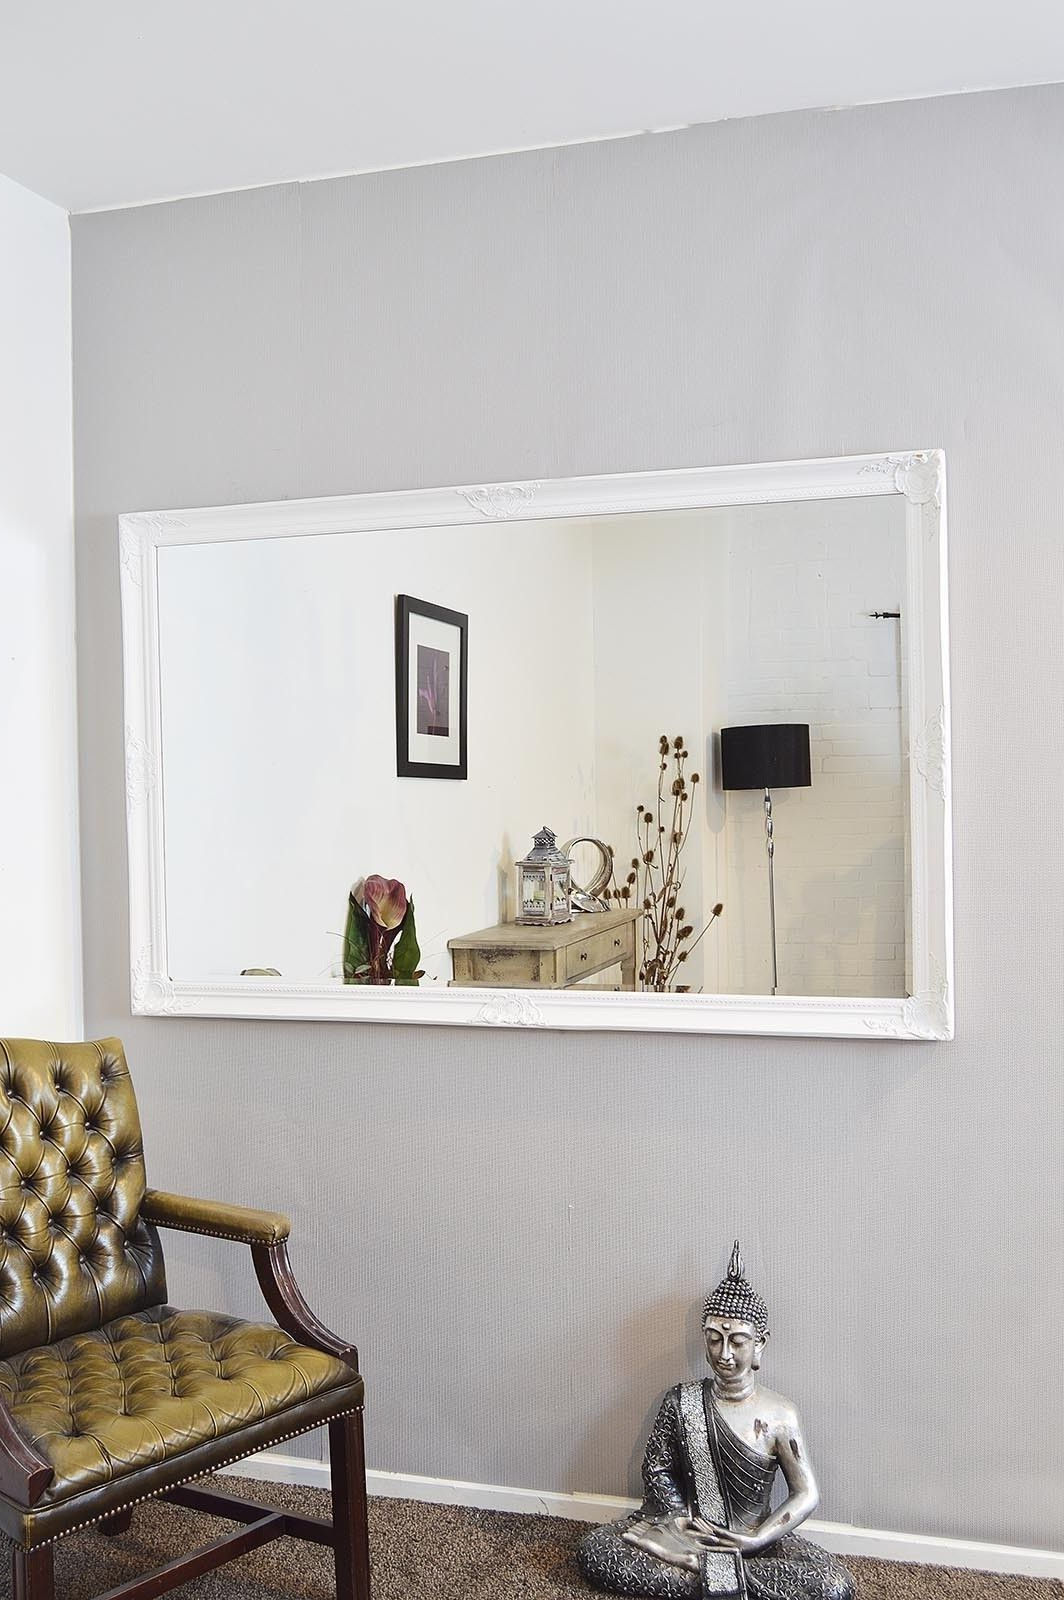 Extra Large White Full Length Antique Bevelled Wall Mirror 5ft6x3ft6 Pertaining To Favorite Extra Large Framed Wall Mirrors (View 18 of 20)